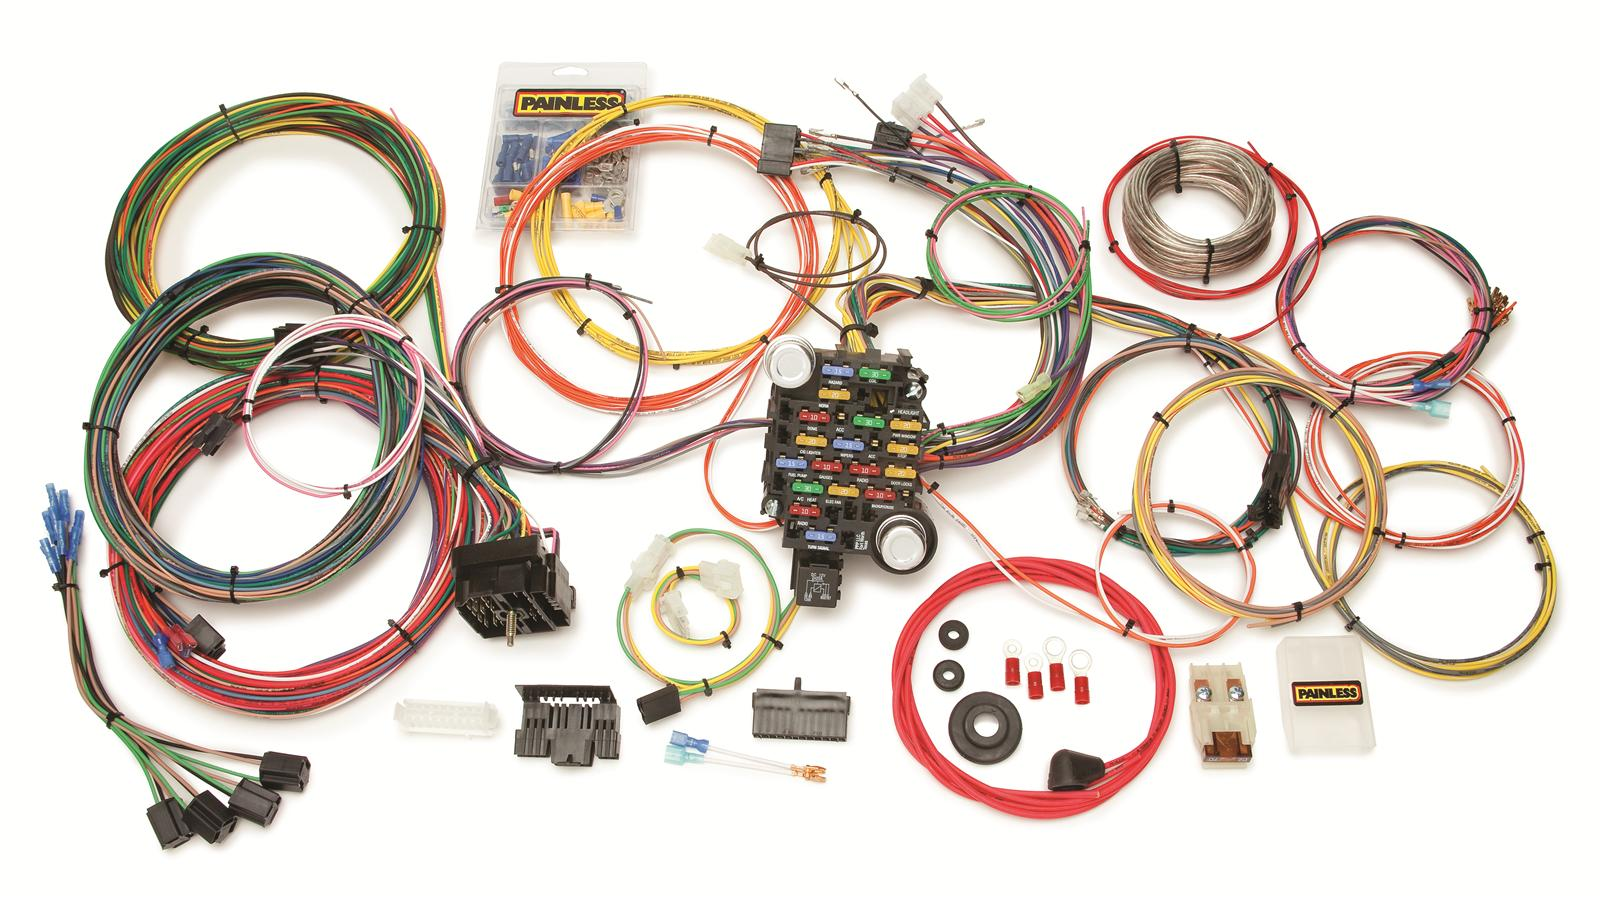 1968 Dodge D100 Wiring Harness Painless Block And Schematic Diagrams 1970 Performance Gmc Chevy Truck Harnesses 10205 Free Shipping Rh Summitracing Com Custom 1966